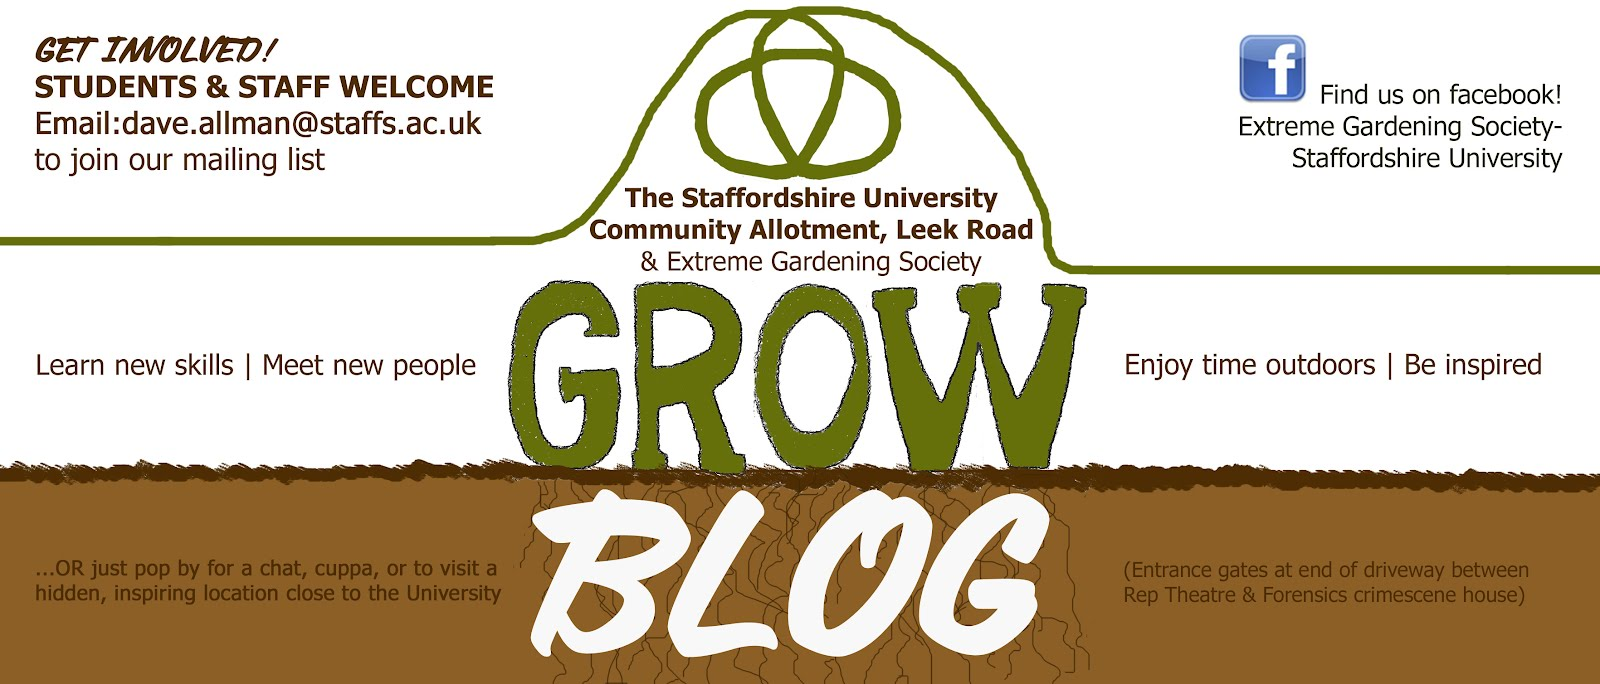 STAFFORDSHIRE UNIVERSITY COMMUNITY GARDEN and EXTREME GARDENING SOCIETY